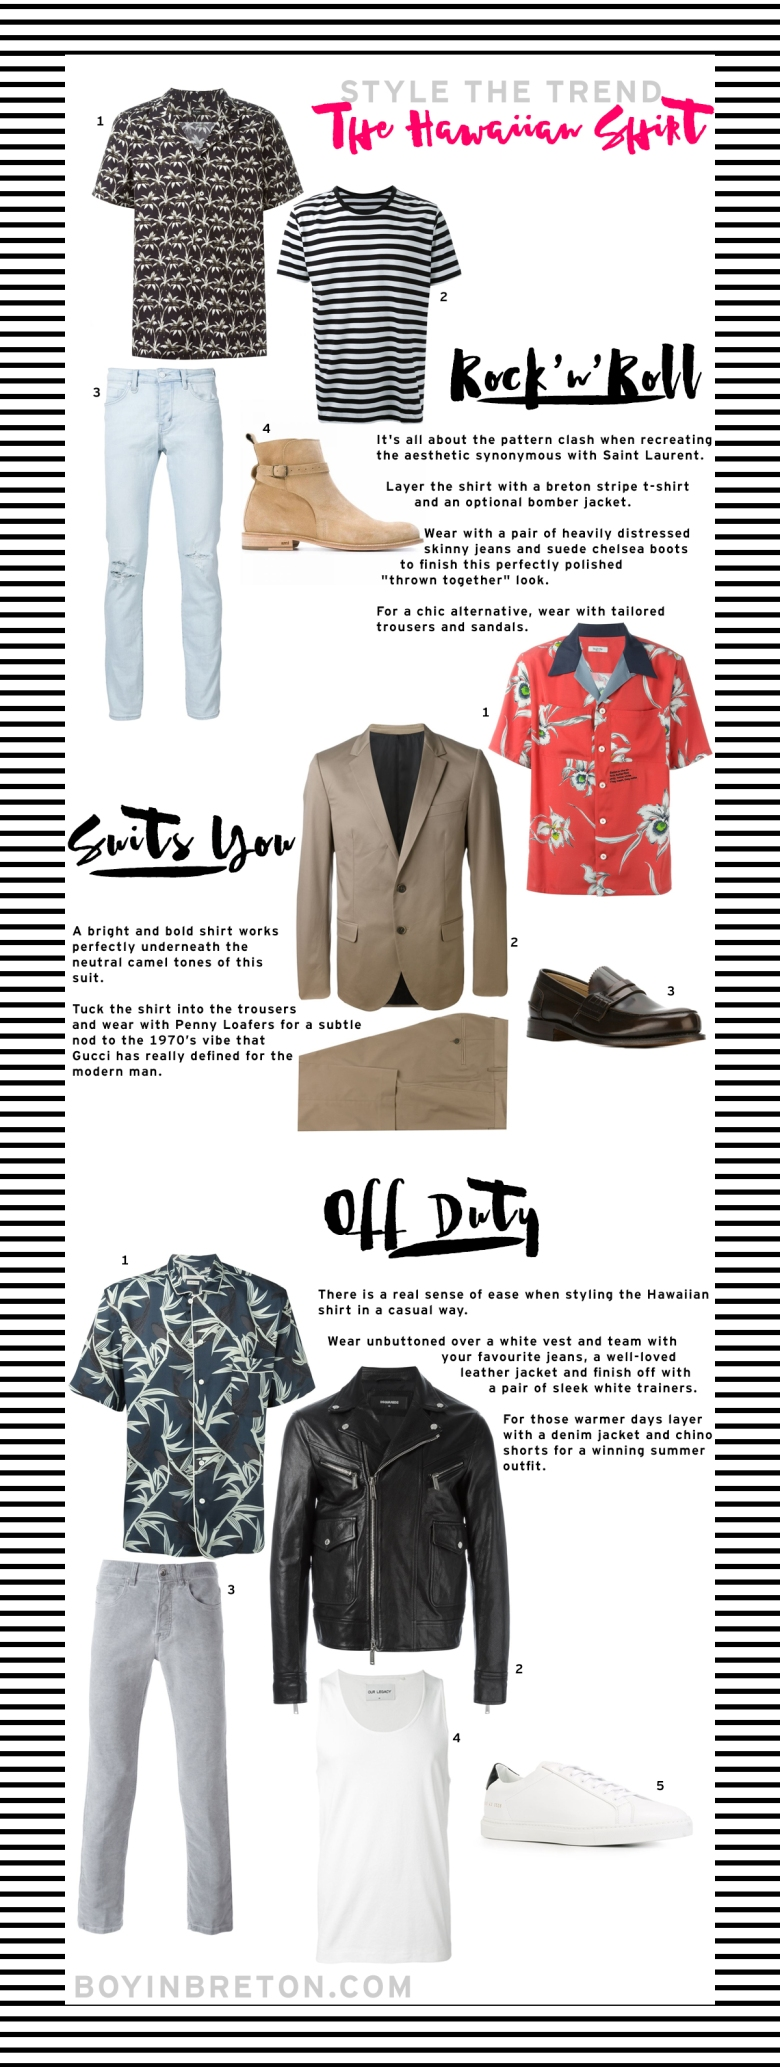 Farfetch Menswear Luxury Style Fashion Clothes Shopping Trend Spring Summer Hawaiian Shirt Boyinbreton Boy in Breton Blog Blogger Top Mens Blog UK London Gay Lifestyle Saint Laurent Acne Marc Jacobs Boots Jeans Stripe T-shirt Shirt Loafers Trainers